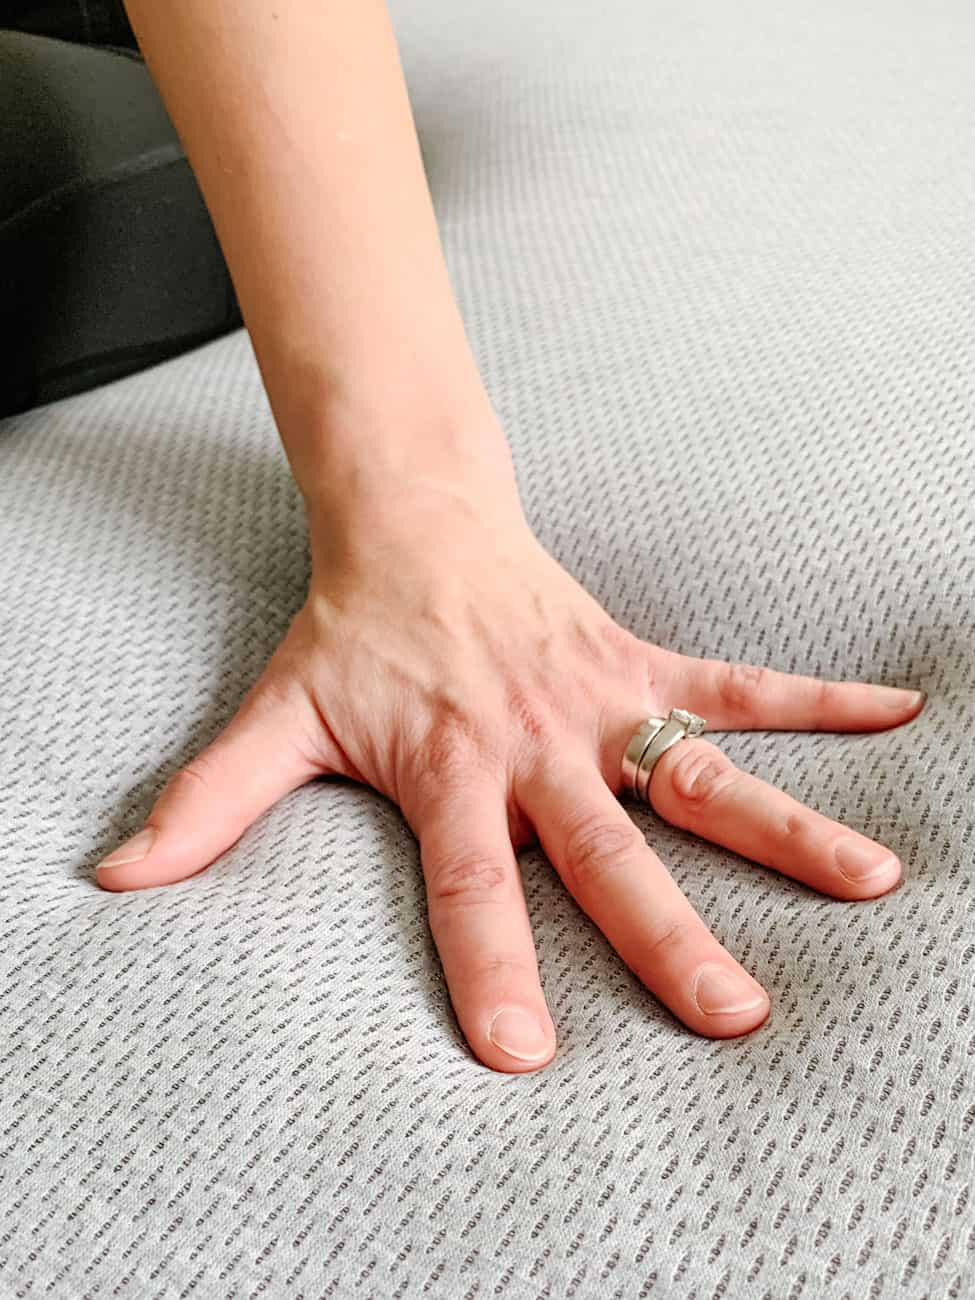 woman's hand with rings pressed into a grey mattress